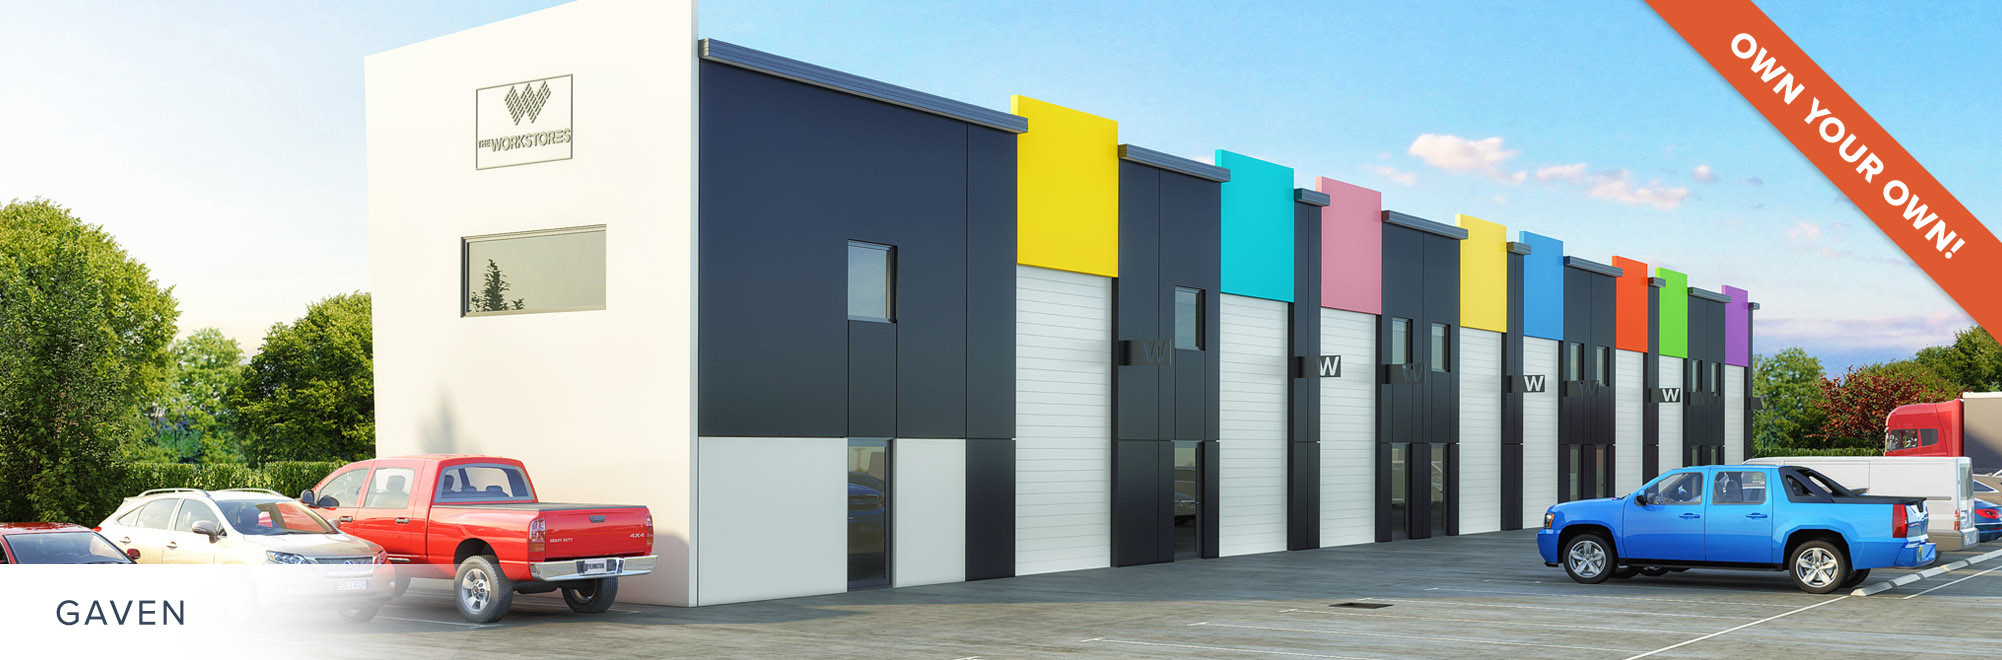 Premium Storage Units for Sale - The Workstores - Gaven, Gold Coast, QLD